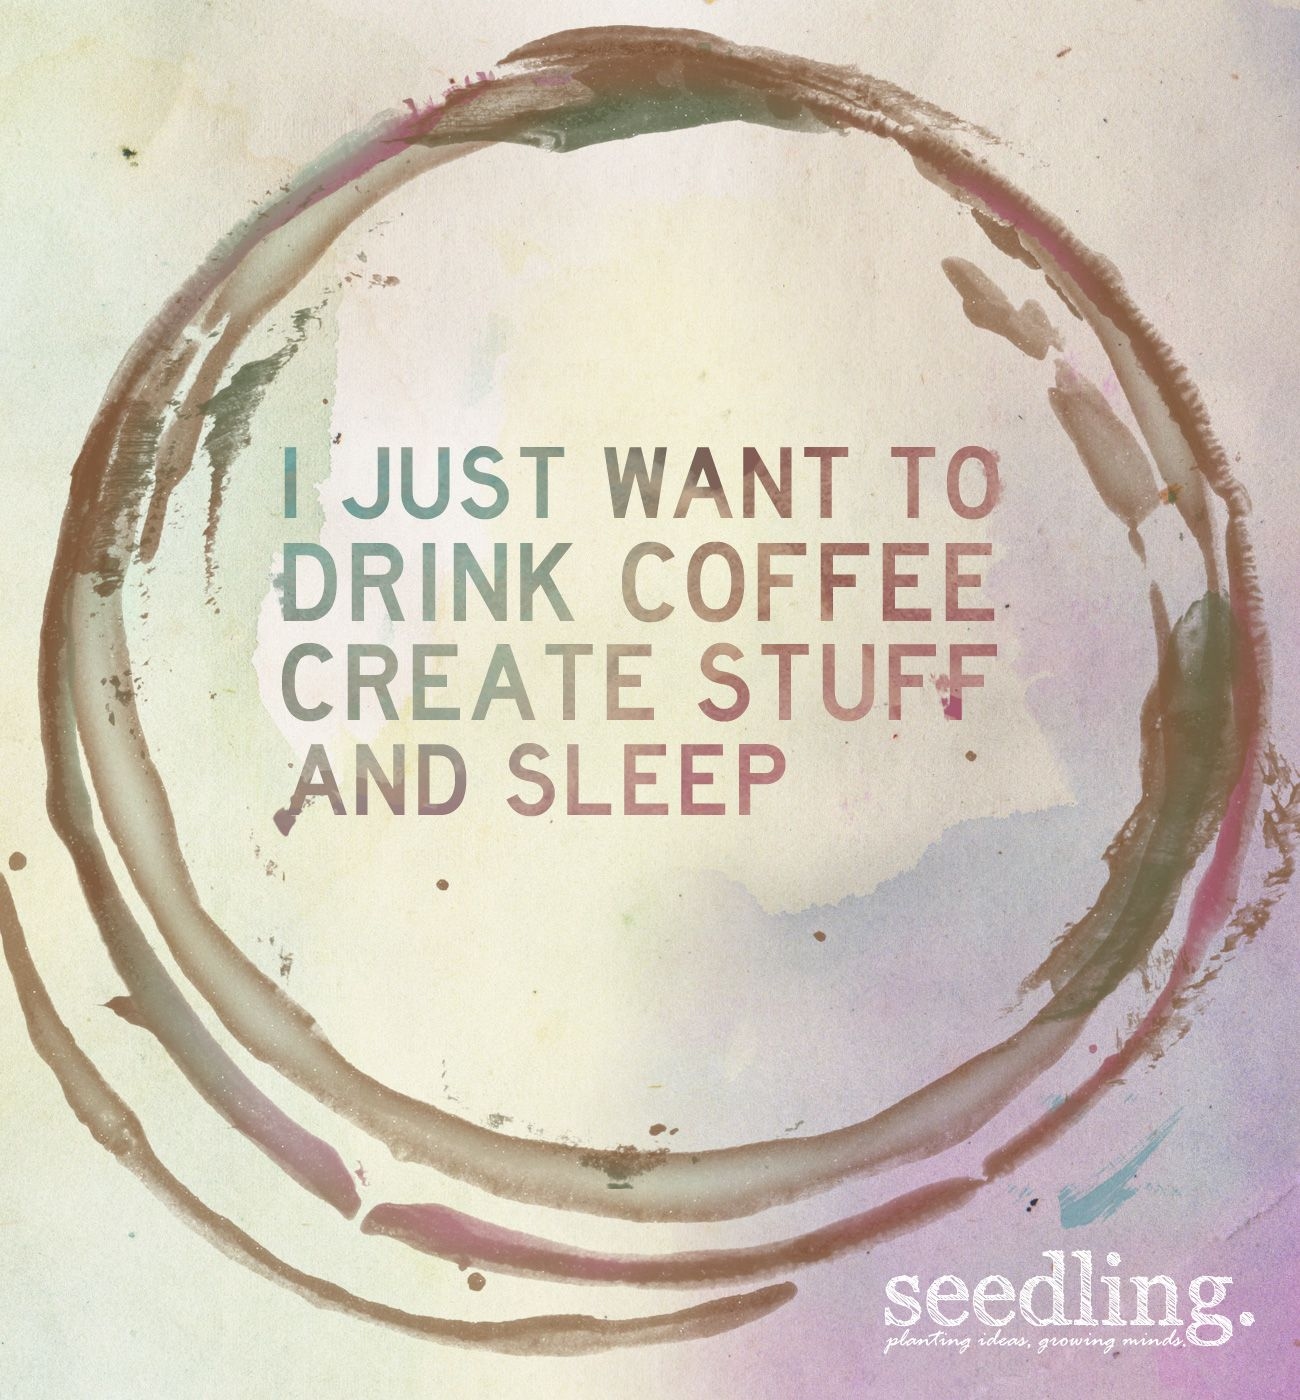 Our thoughts exactly. Eat. Sleep. Create. Repeat.